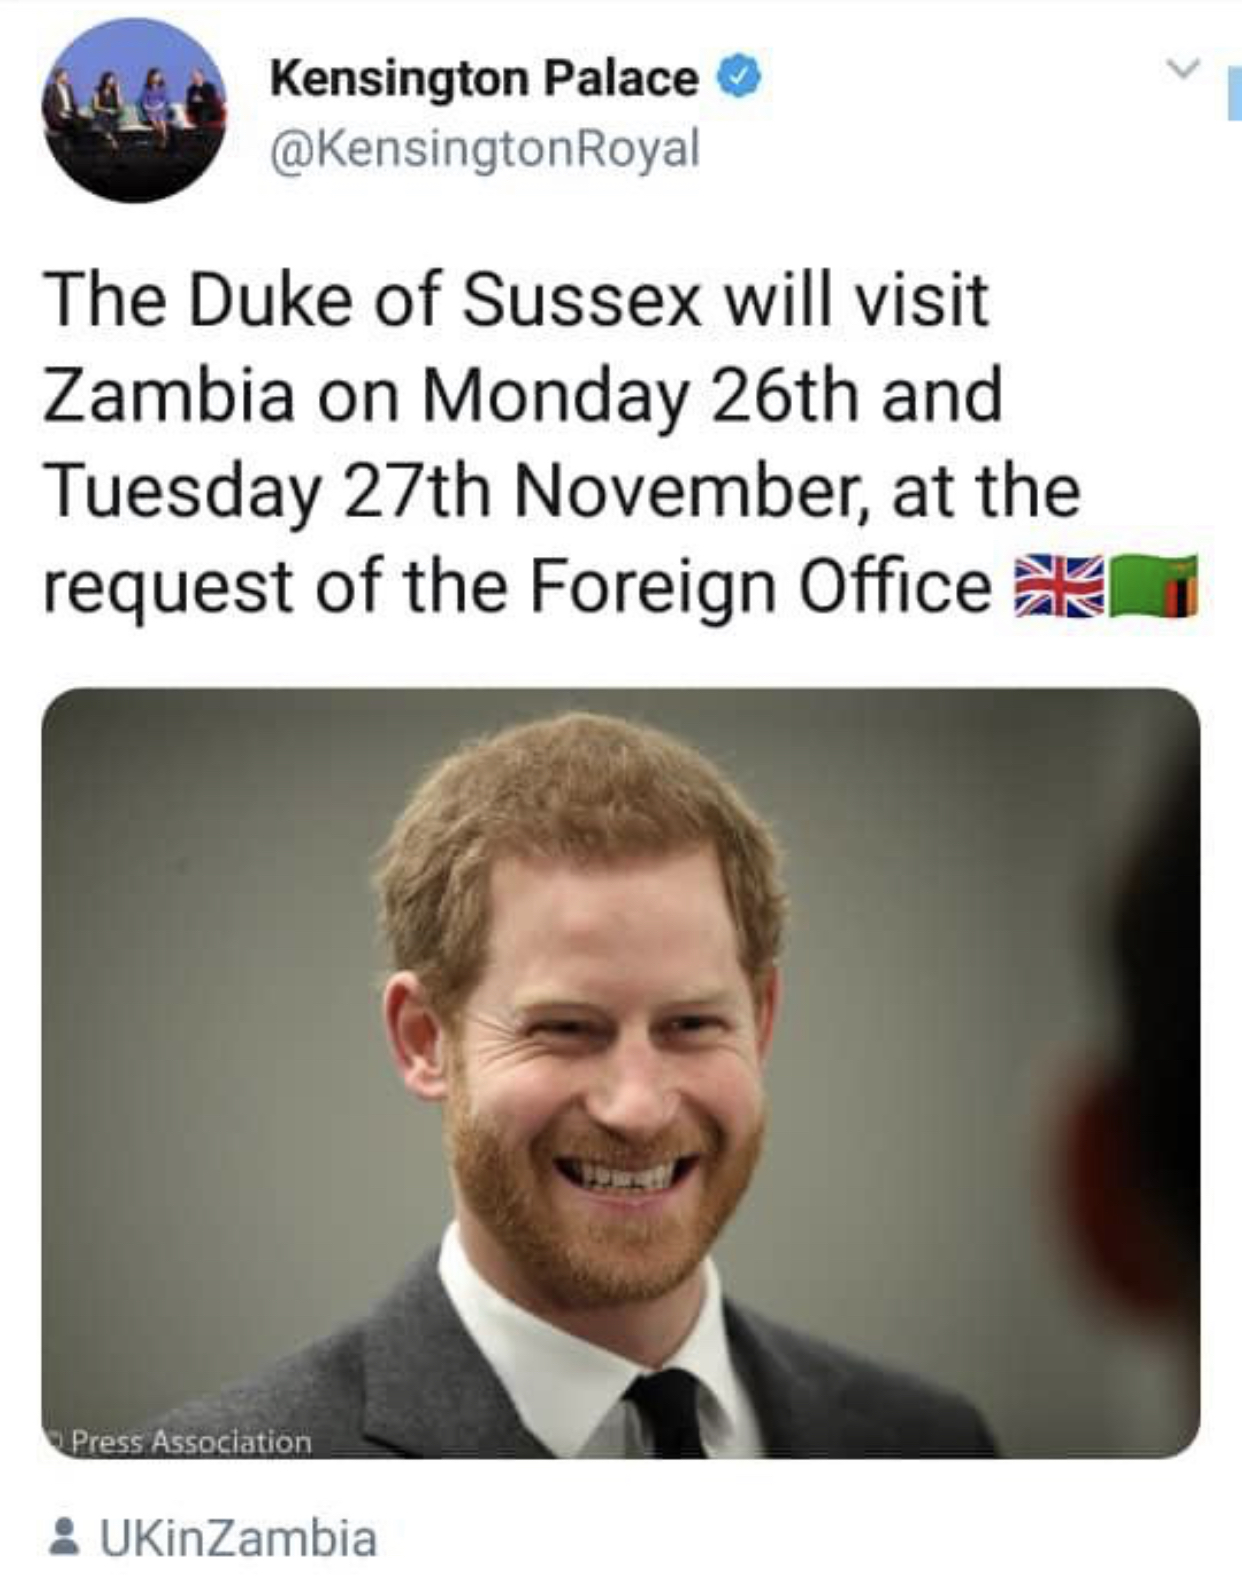 Prince Harry to visit Zambia